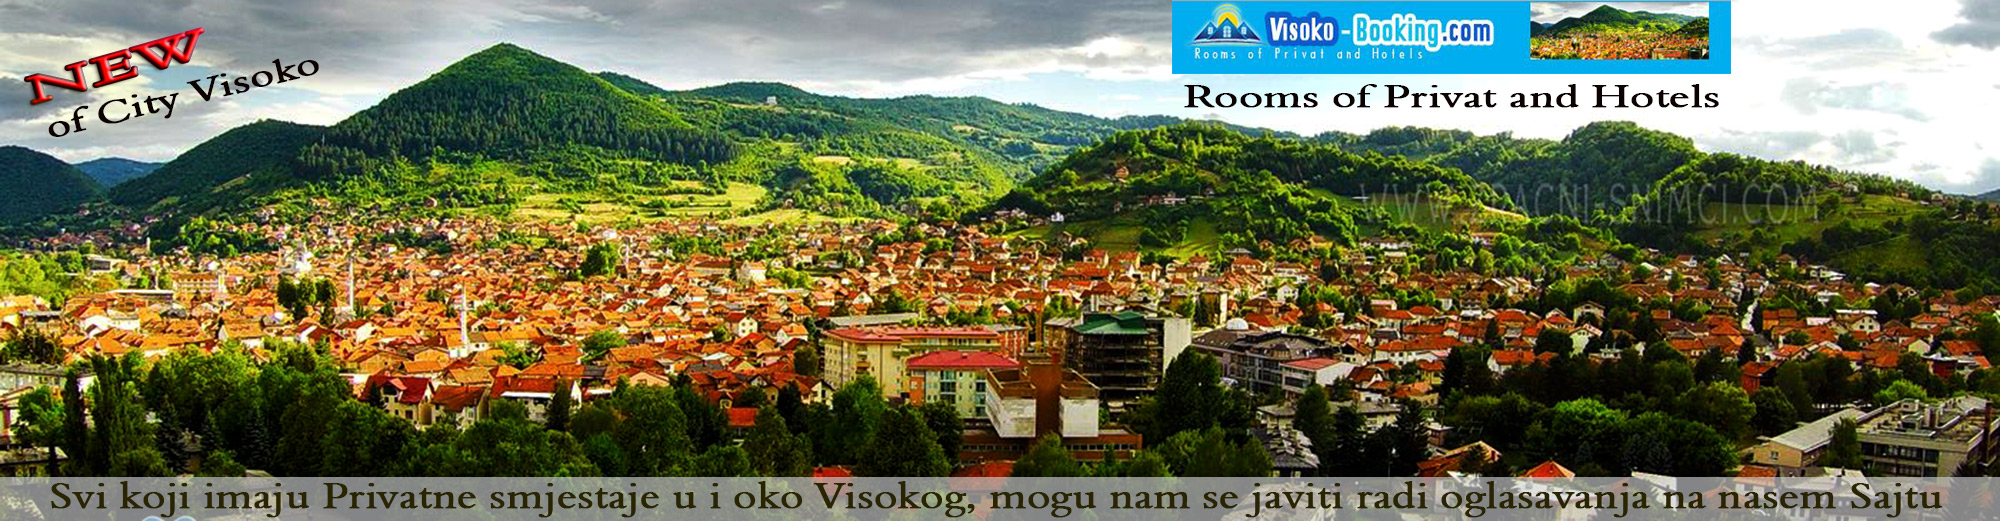 visoko-booking-banner